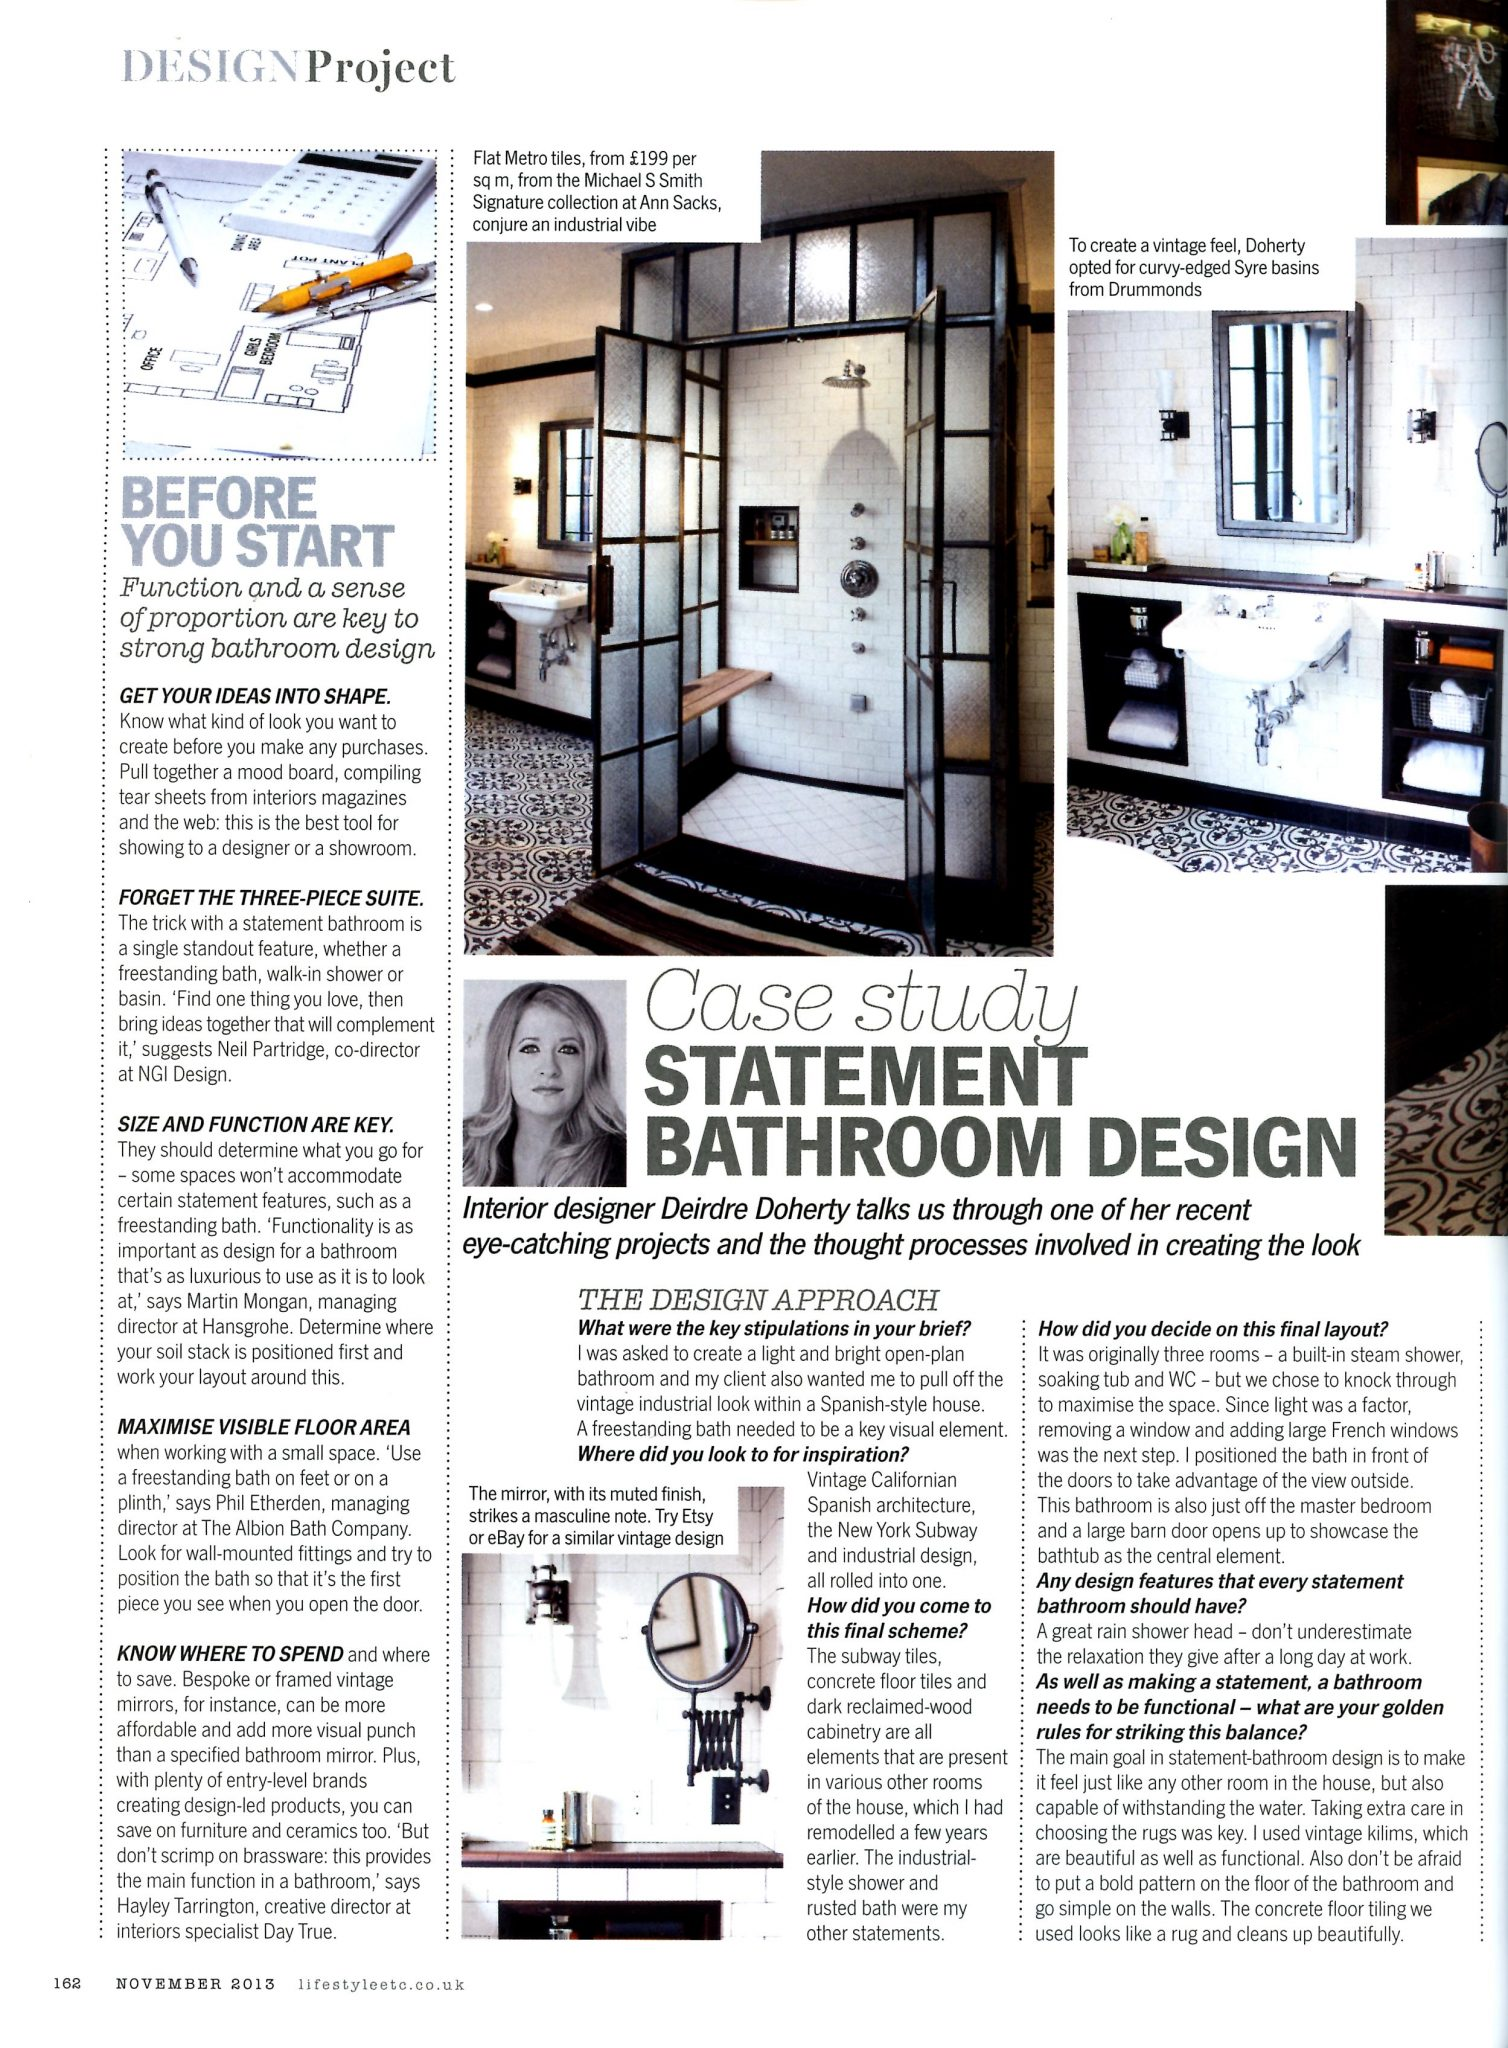 Deirdre Doherty Interior Designer Los Angeles Published Black and White Bathroom Bathroom Design Interior Design